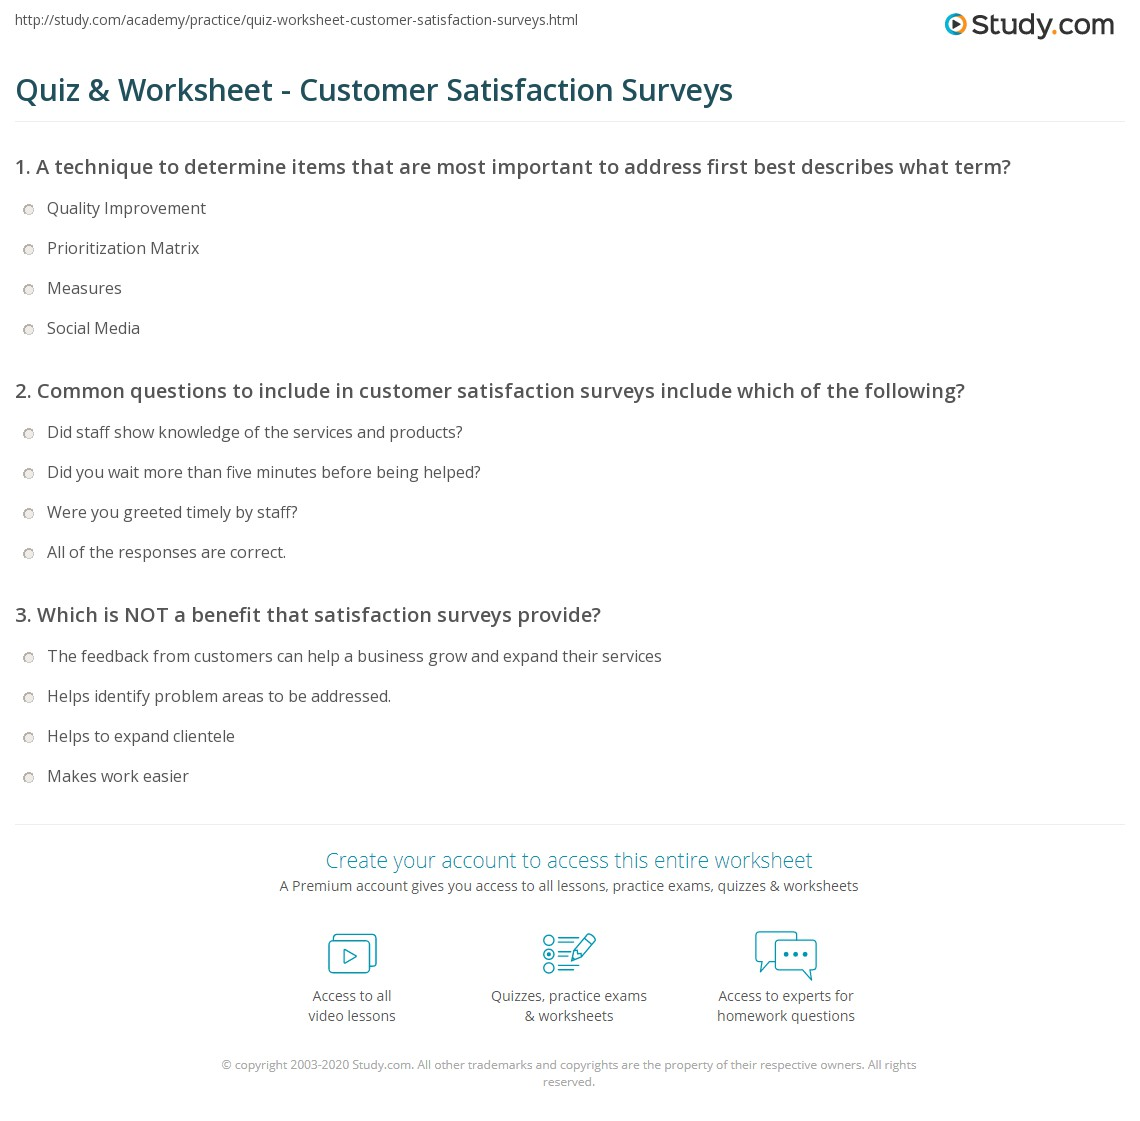 Quiz & Worksheet - Customer Satisfaction Surveys | Study.com